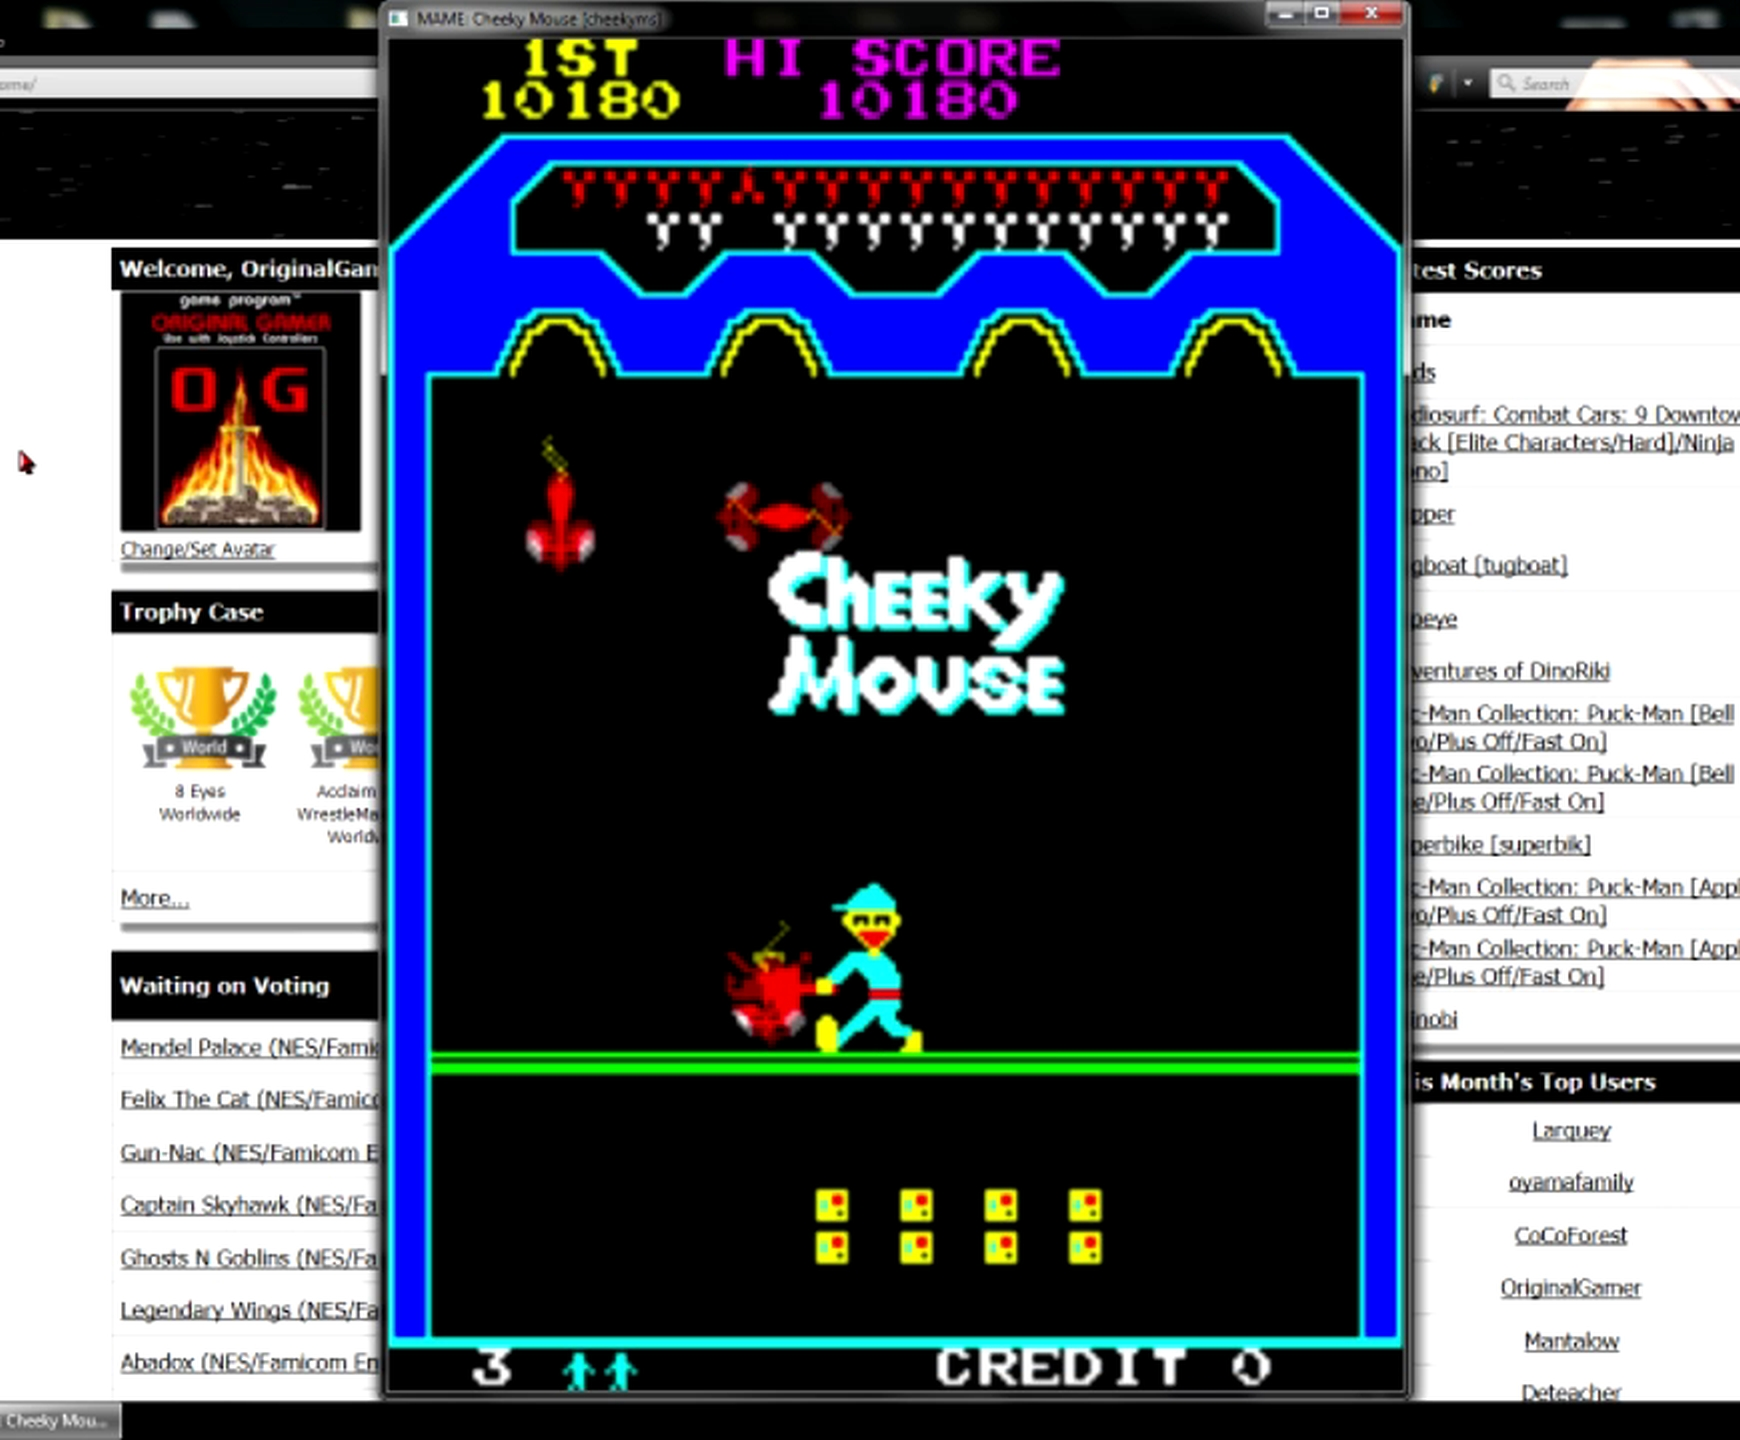 OriginalGamer: Cheeky Mouse [cheekyms] (Arcade Emulated / M.A.M.E.) 10,180 points on 2015-05-30 23:33:50